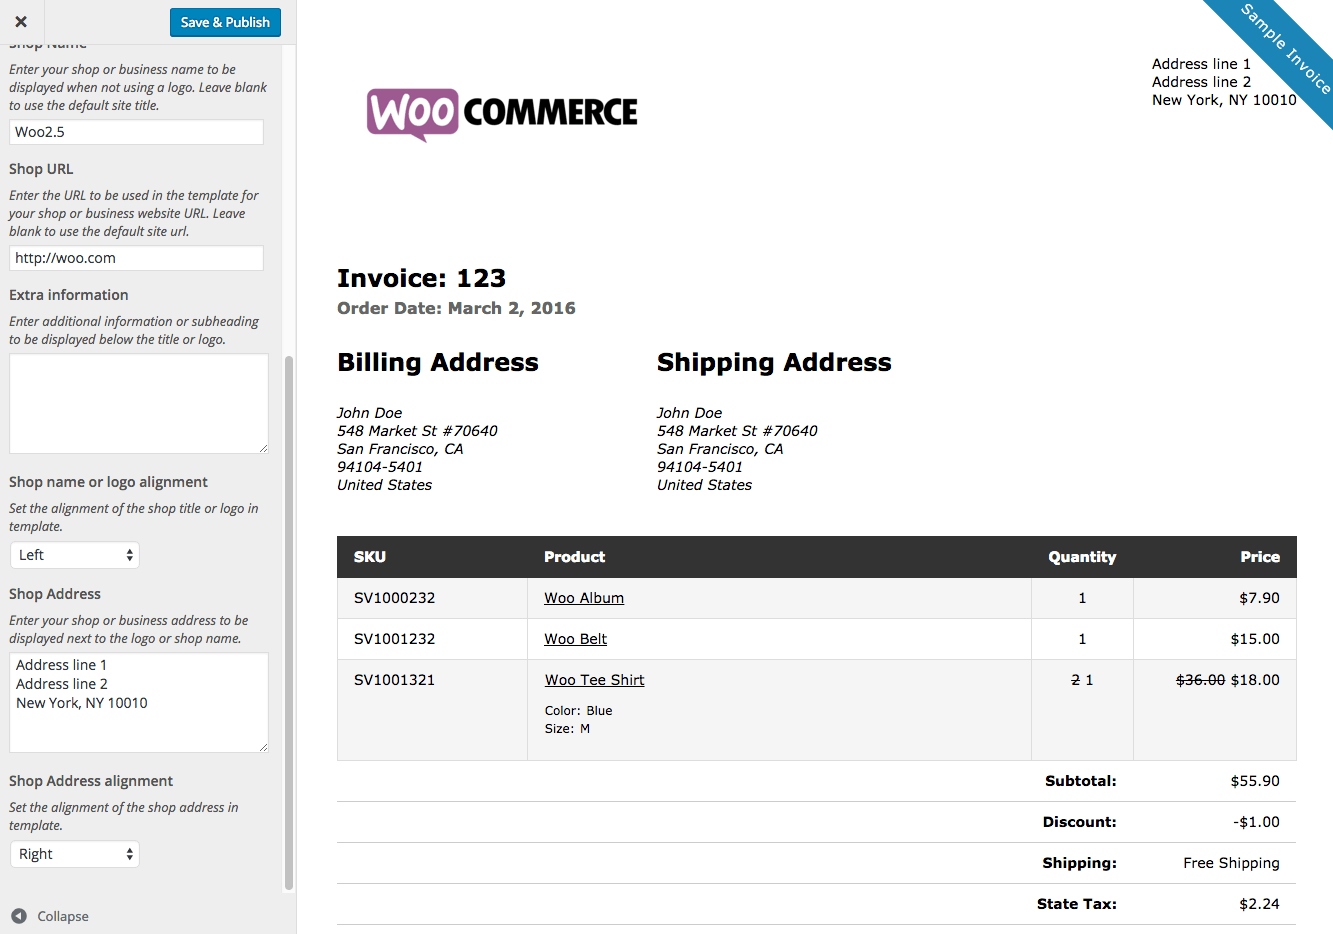 Usdgus  Surprising Print Invoices Amp Packing Lists  Woocommerce With Remarkable Woocommerce Print Invoices  Packing Lists Customizer With Easy On The Eye Receipt For Hot Wings Also Receipt For Child Care Services In Addition Bill And Receipt Scanner And Negotiable Warehouse Receipt As Well As Sunglass Hut Exchange No Receipt Additionally Receipted Definition From Woocommercecom With Usdgus  Remarkable Print Invoices Amp Packing Lists  Woocommerce With Easy On The Eye Woocommerce Print Invoices  Packing Lists Customizer And Surprising Receipt For Hot Wings Also Receipt For Child Care Services In Addition Bill And Receipt Scanner From Woocommercecom